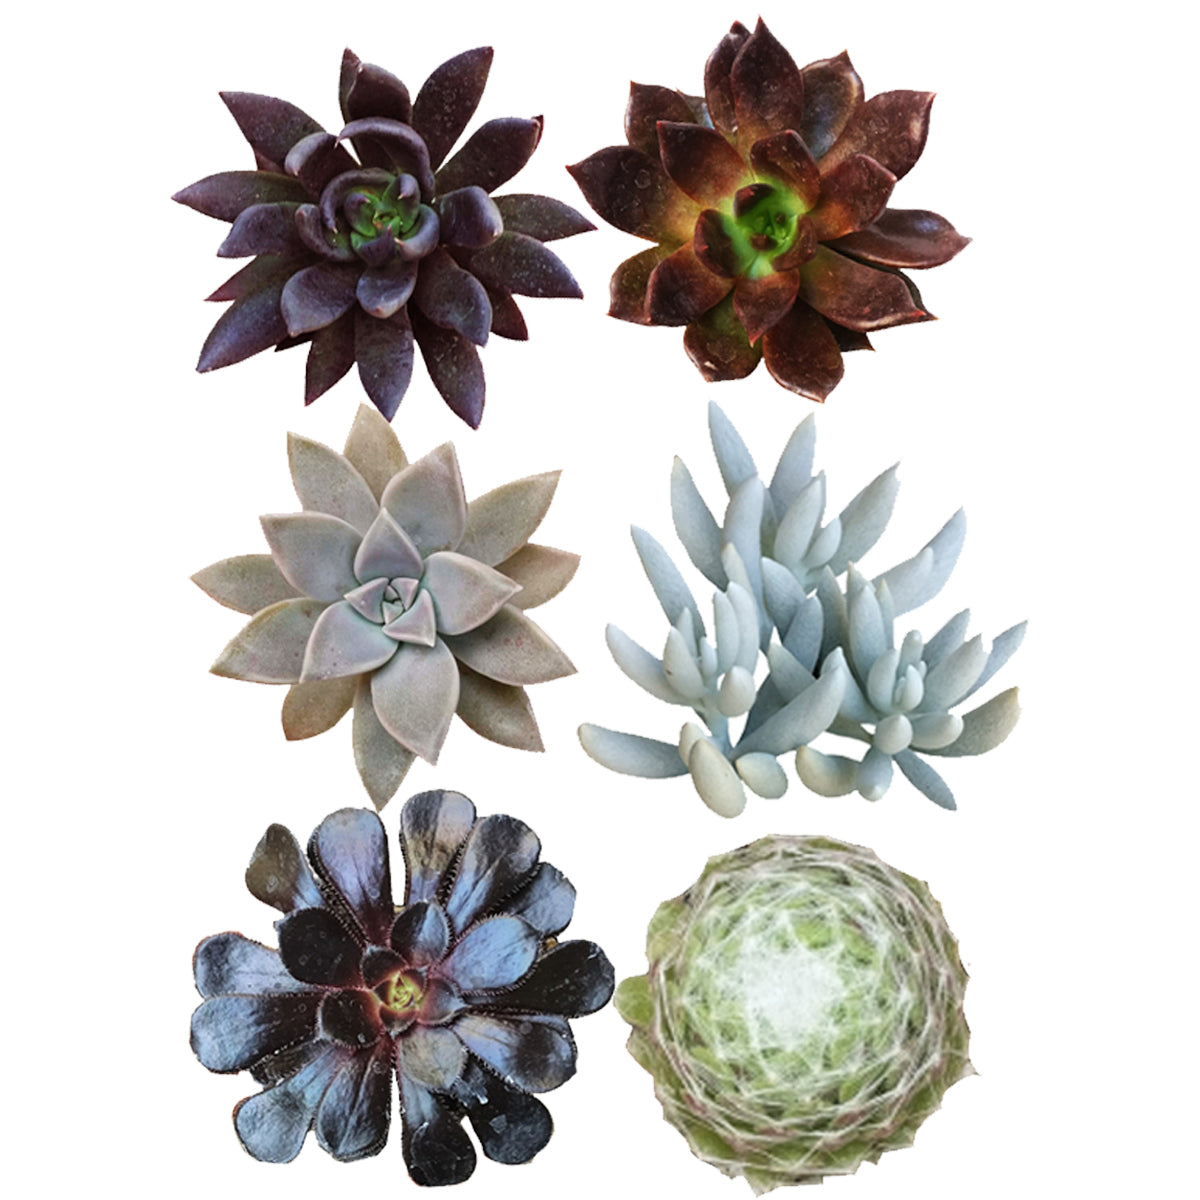 Halloween Spooky Succulent Pack for sale, Spooky Succulent Collection for Haloween Decor, Black Succulents for Haloween Gift, Haloween Succulent Gift Idea